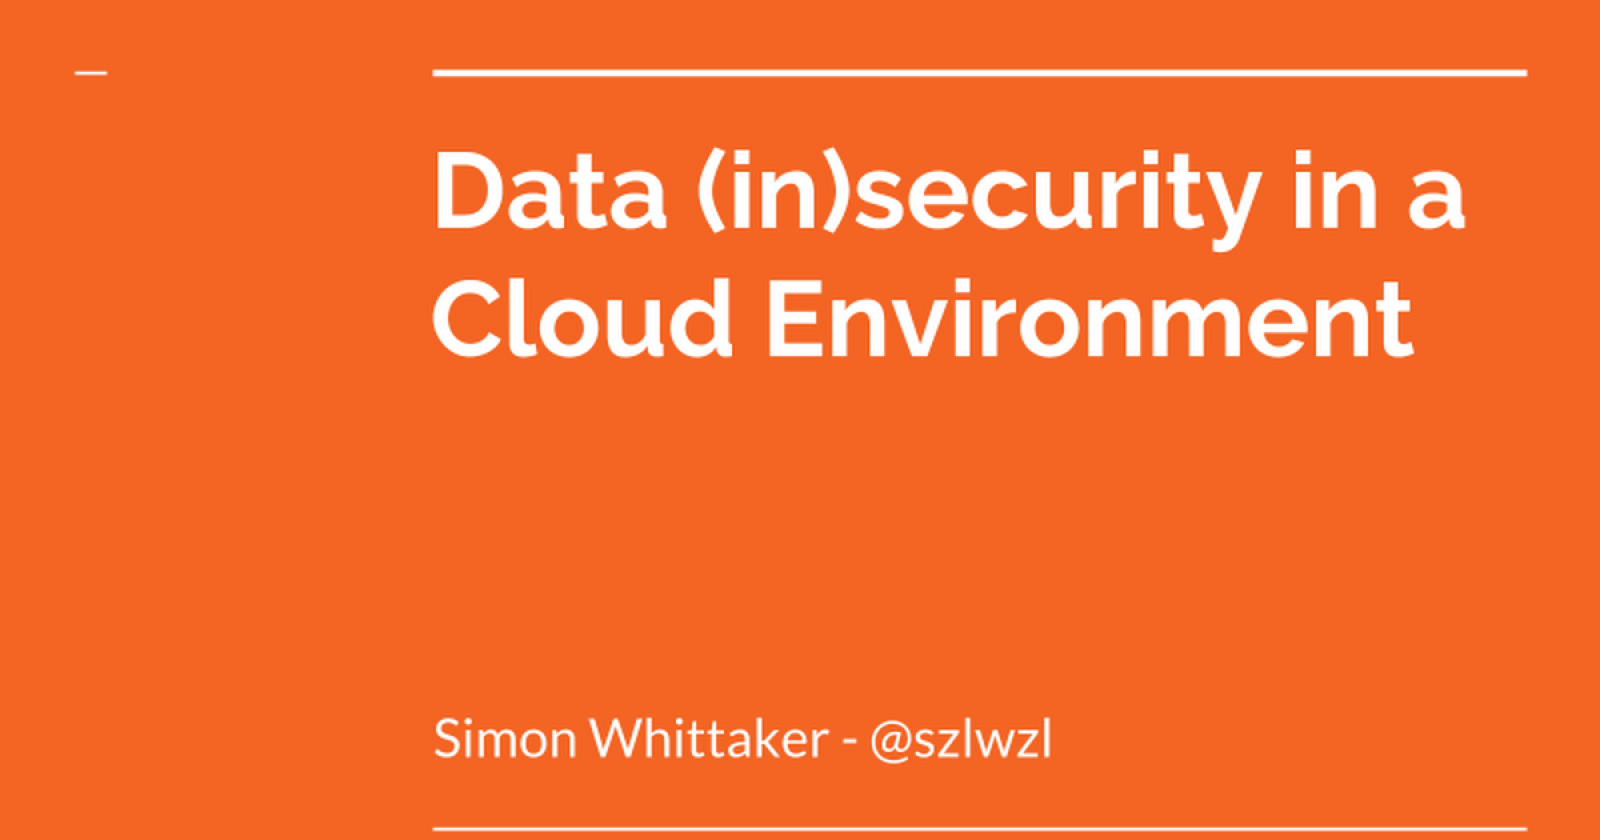 Data (in)security in a Cloud Environment